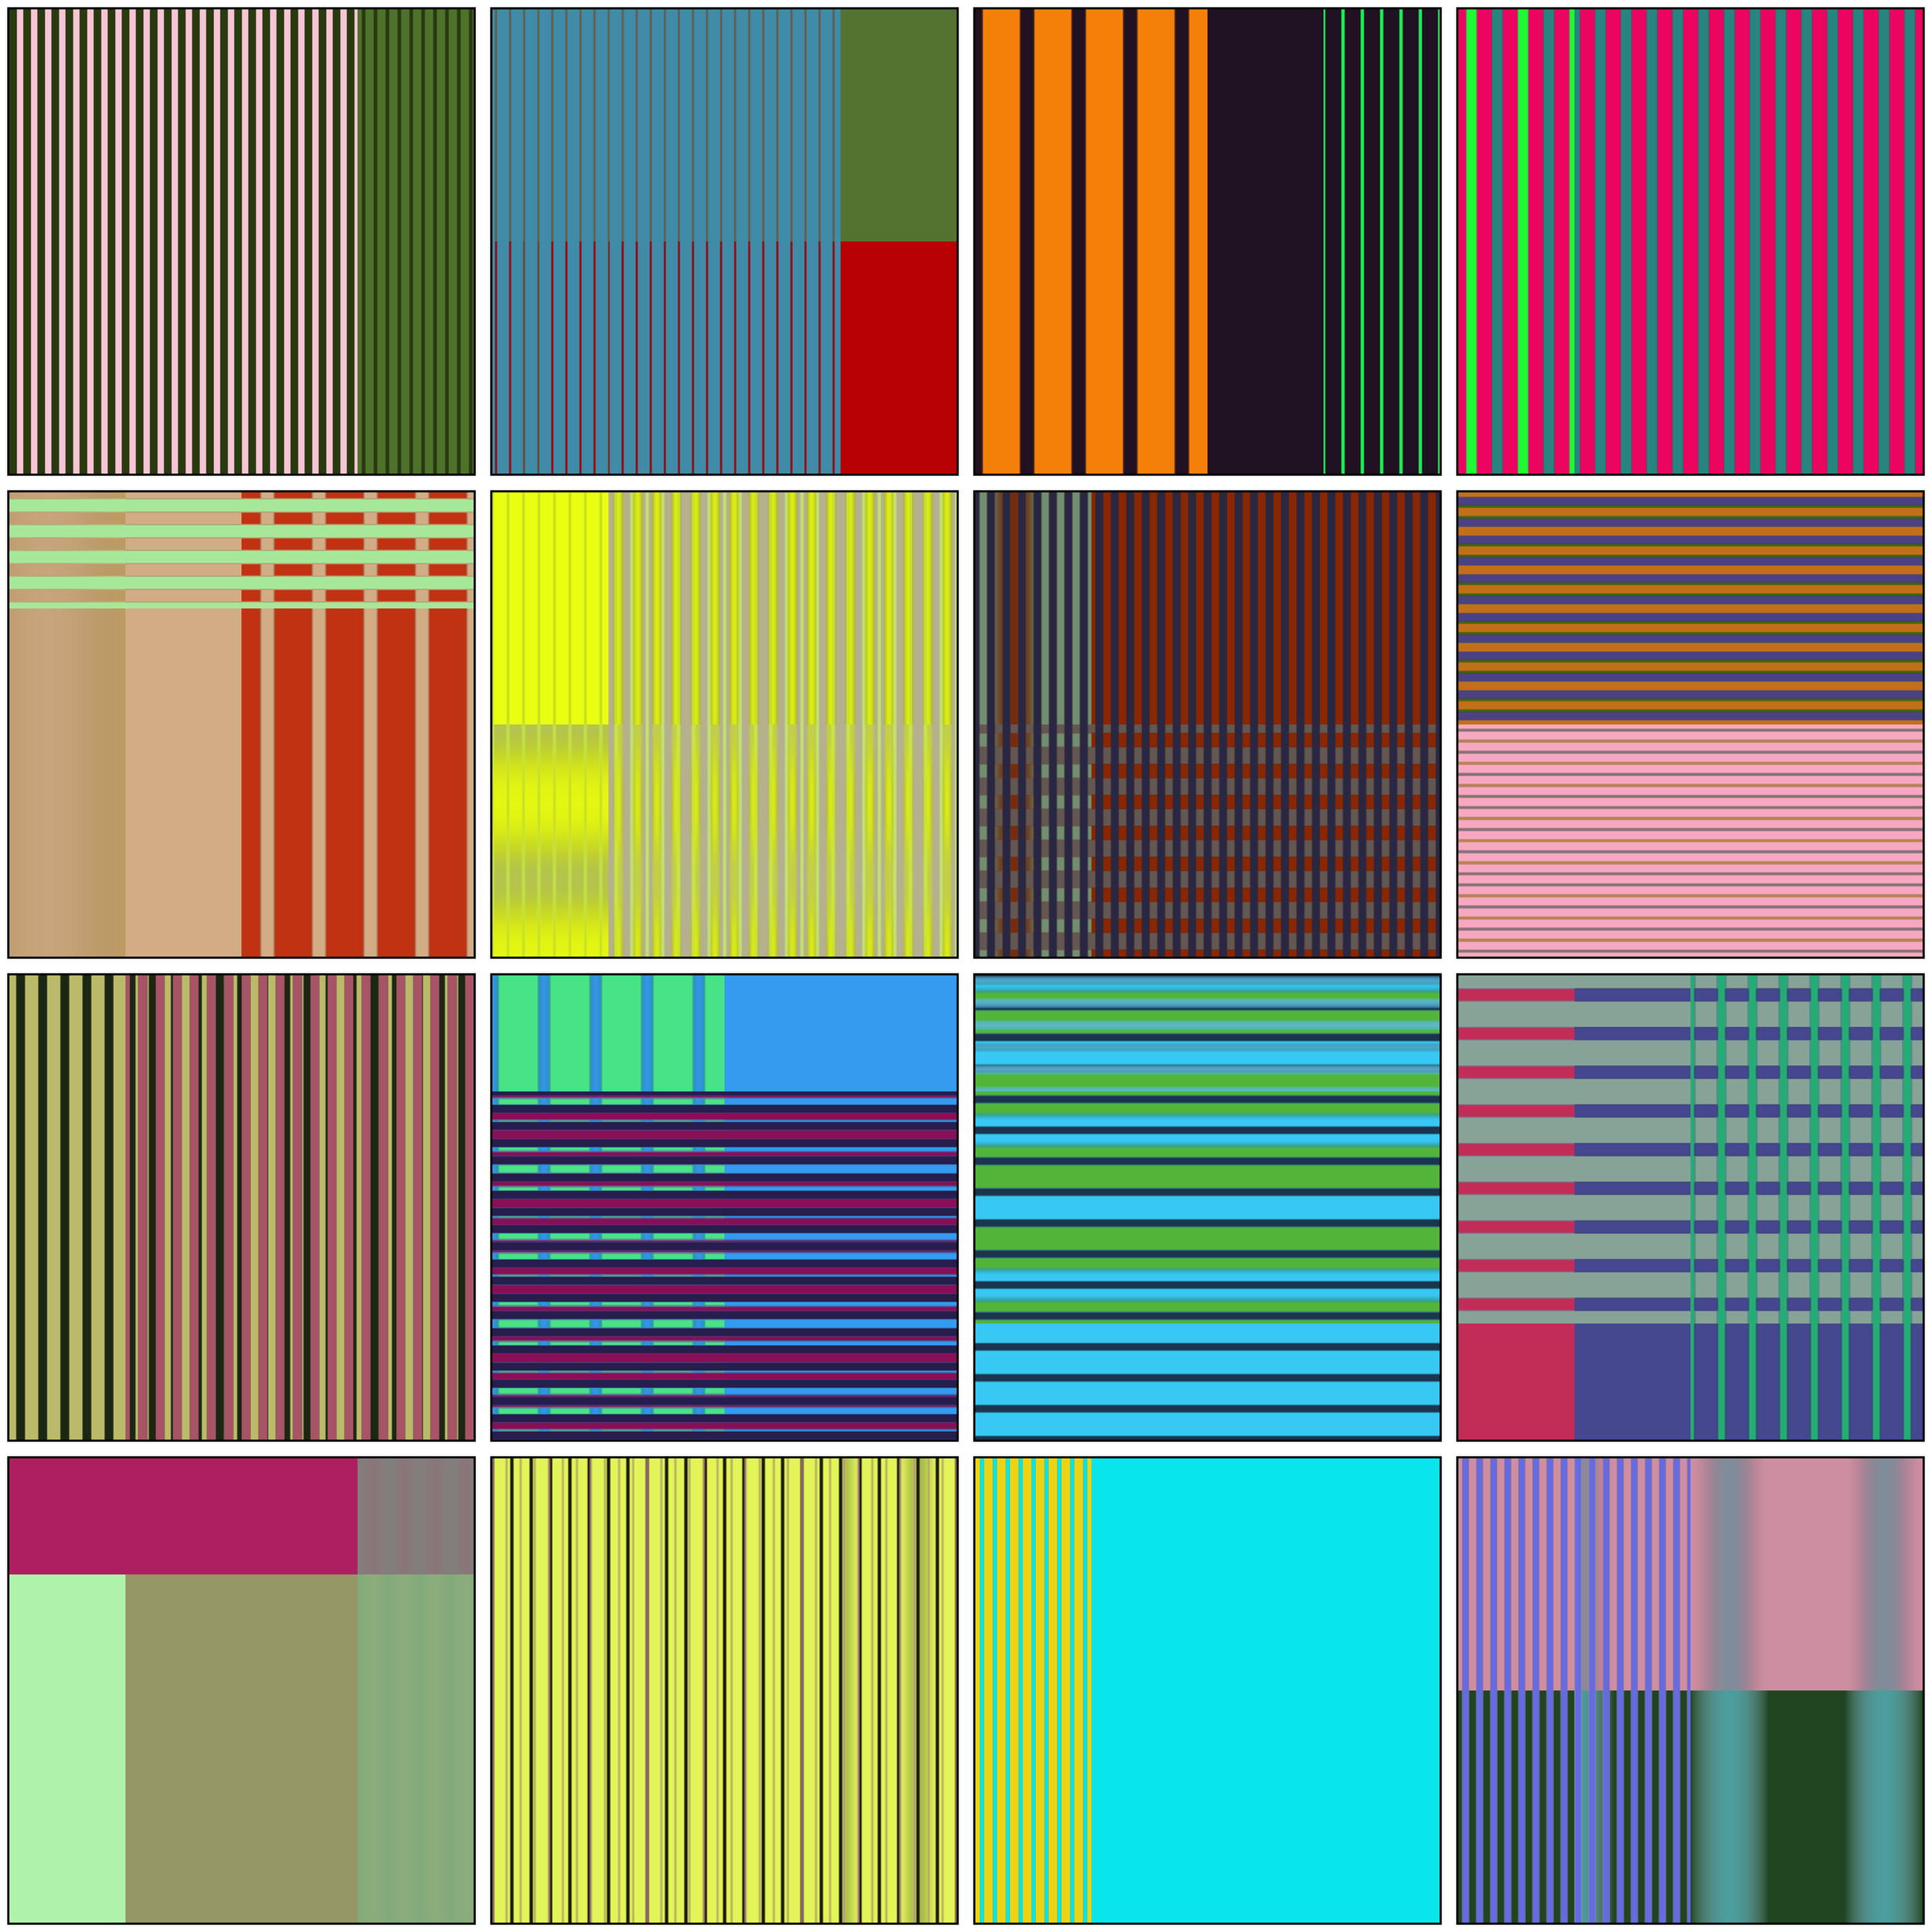 Zombie Formalist , (2018) work in progress. Selection of stripe studies. Image courtesy of the artist.